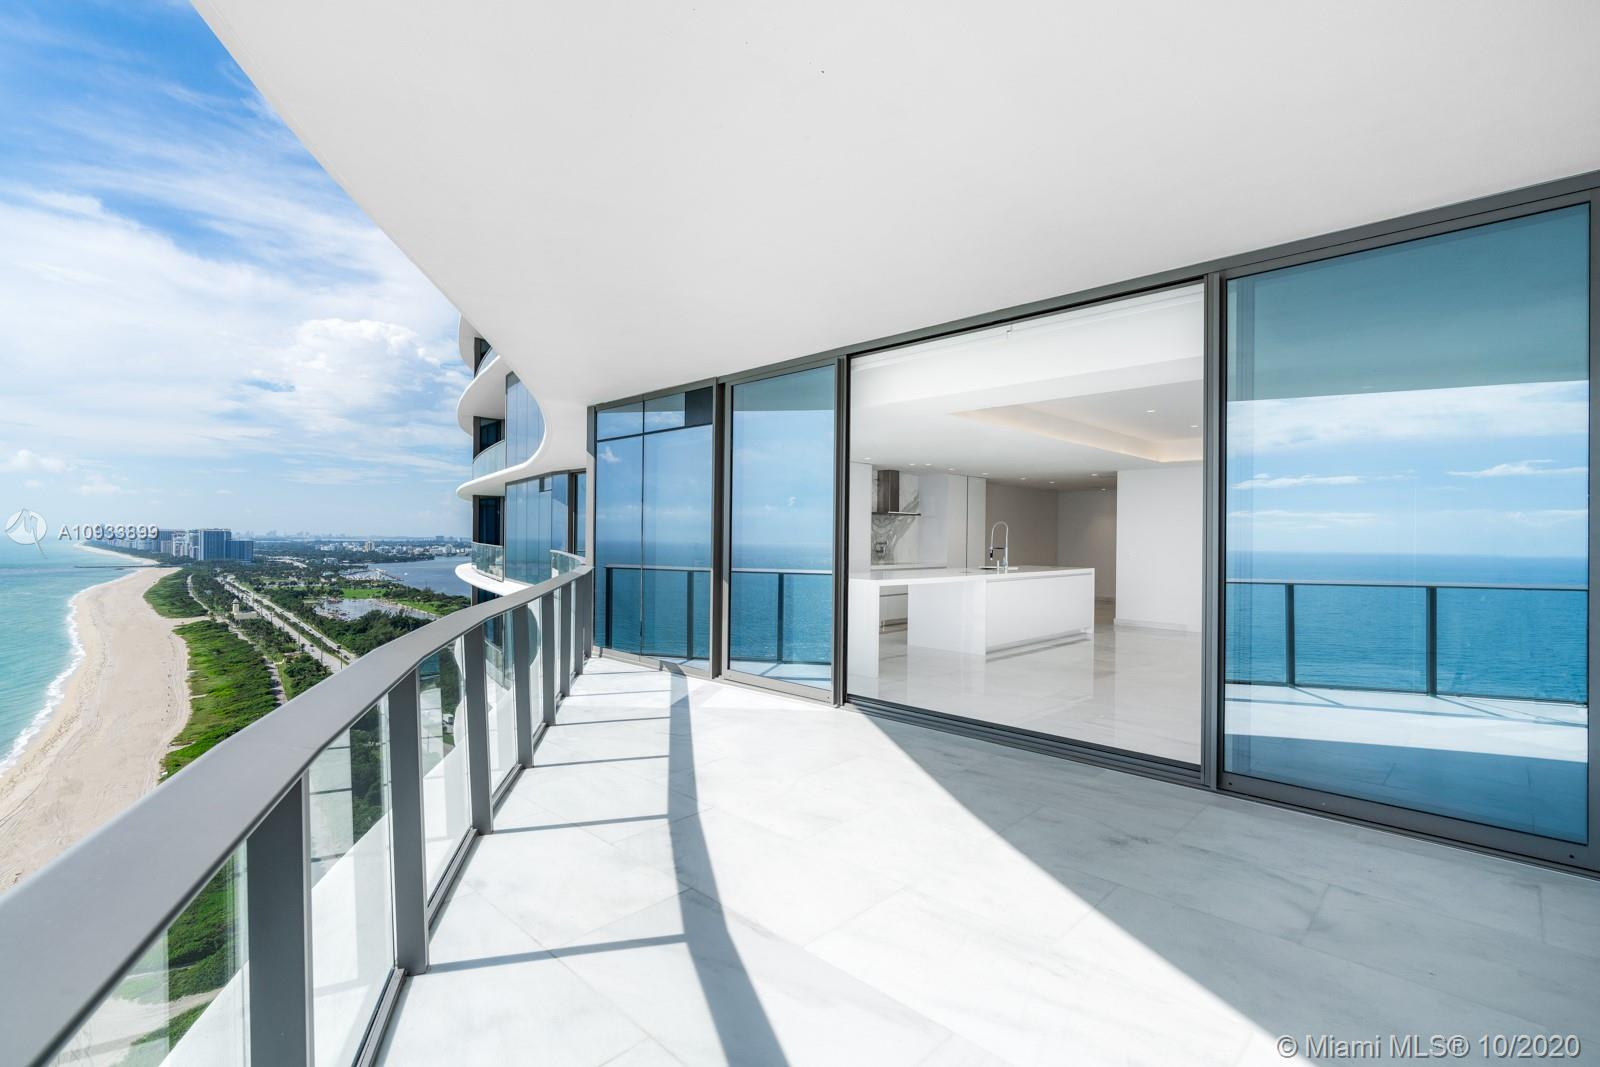 15701 Collins Ave, Unit #2802 Luxury Real Estate